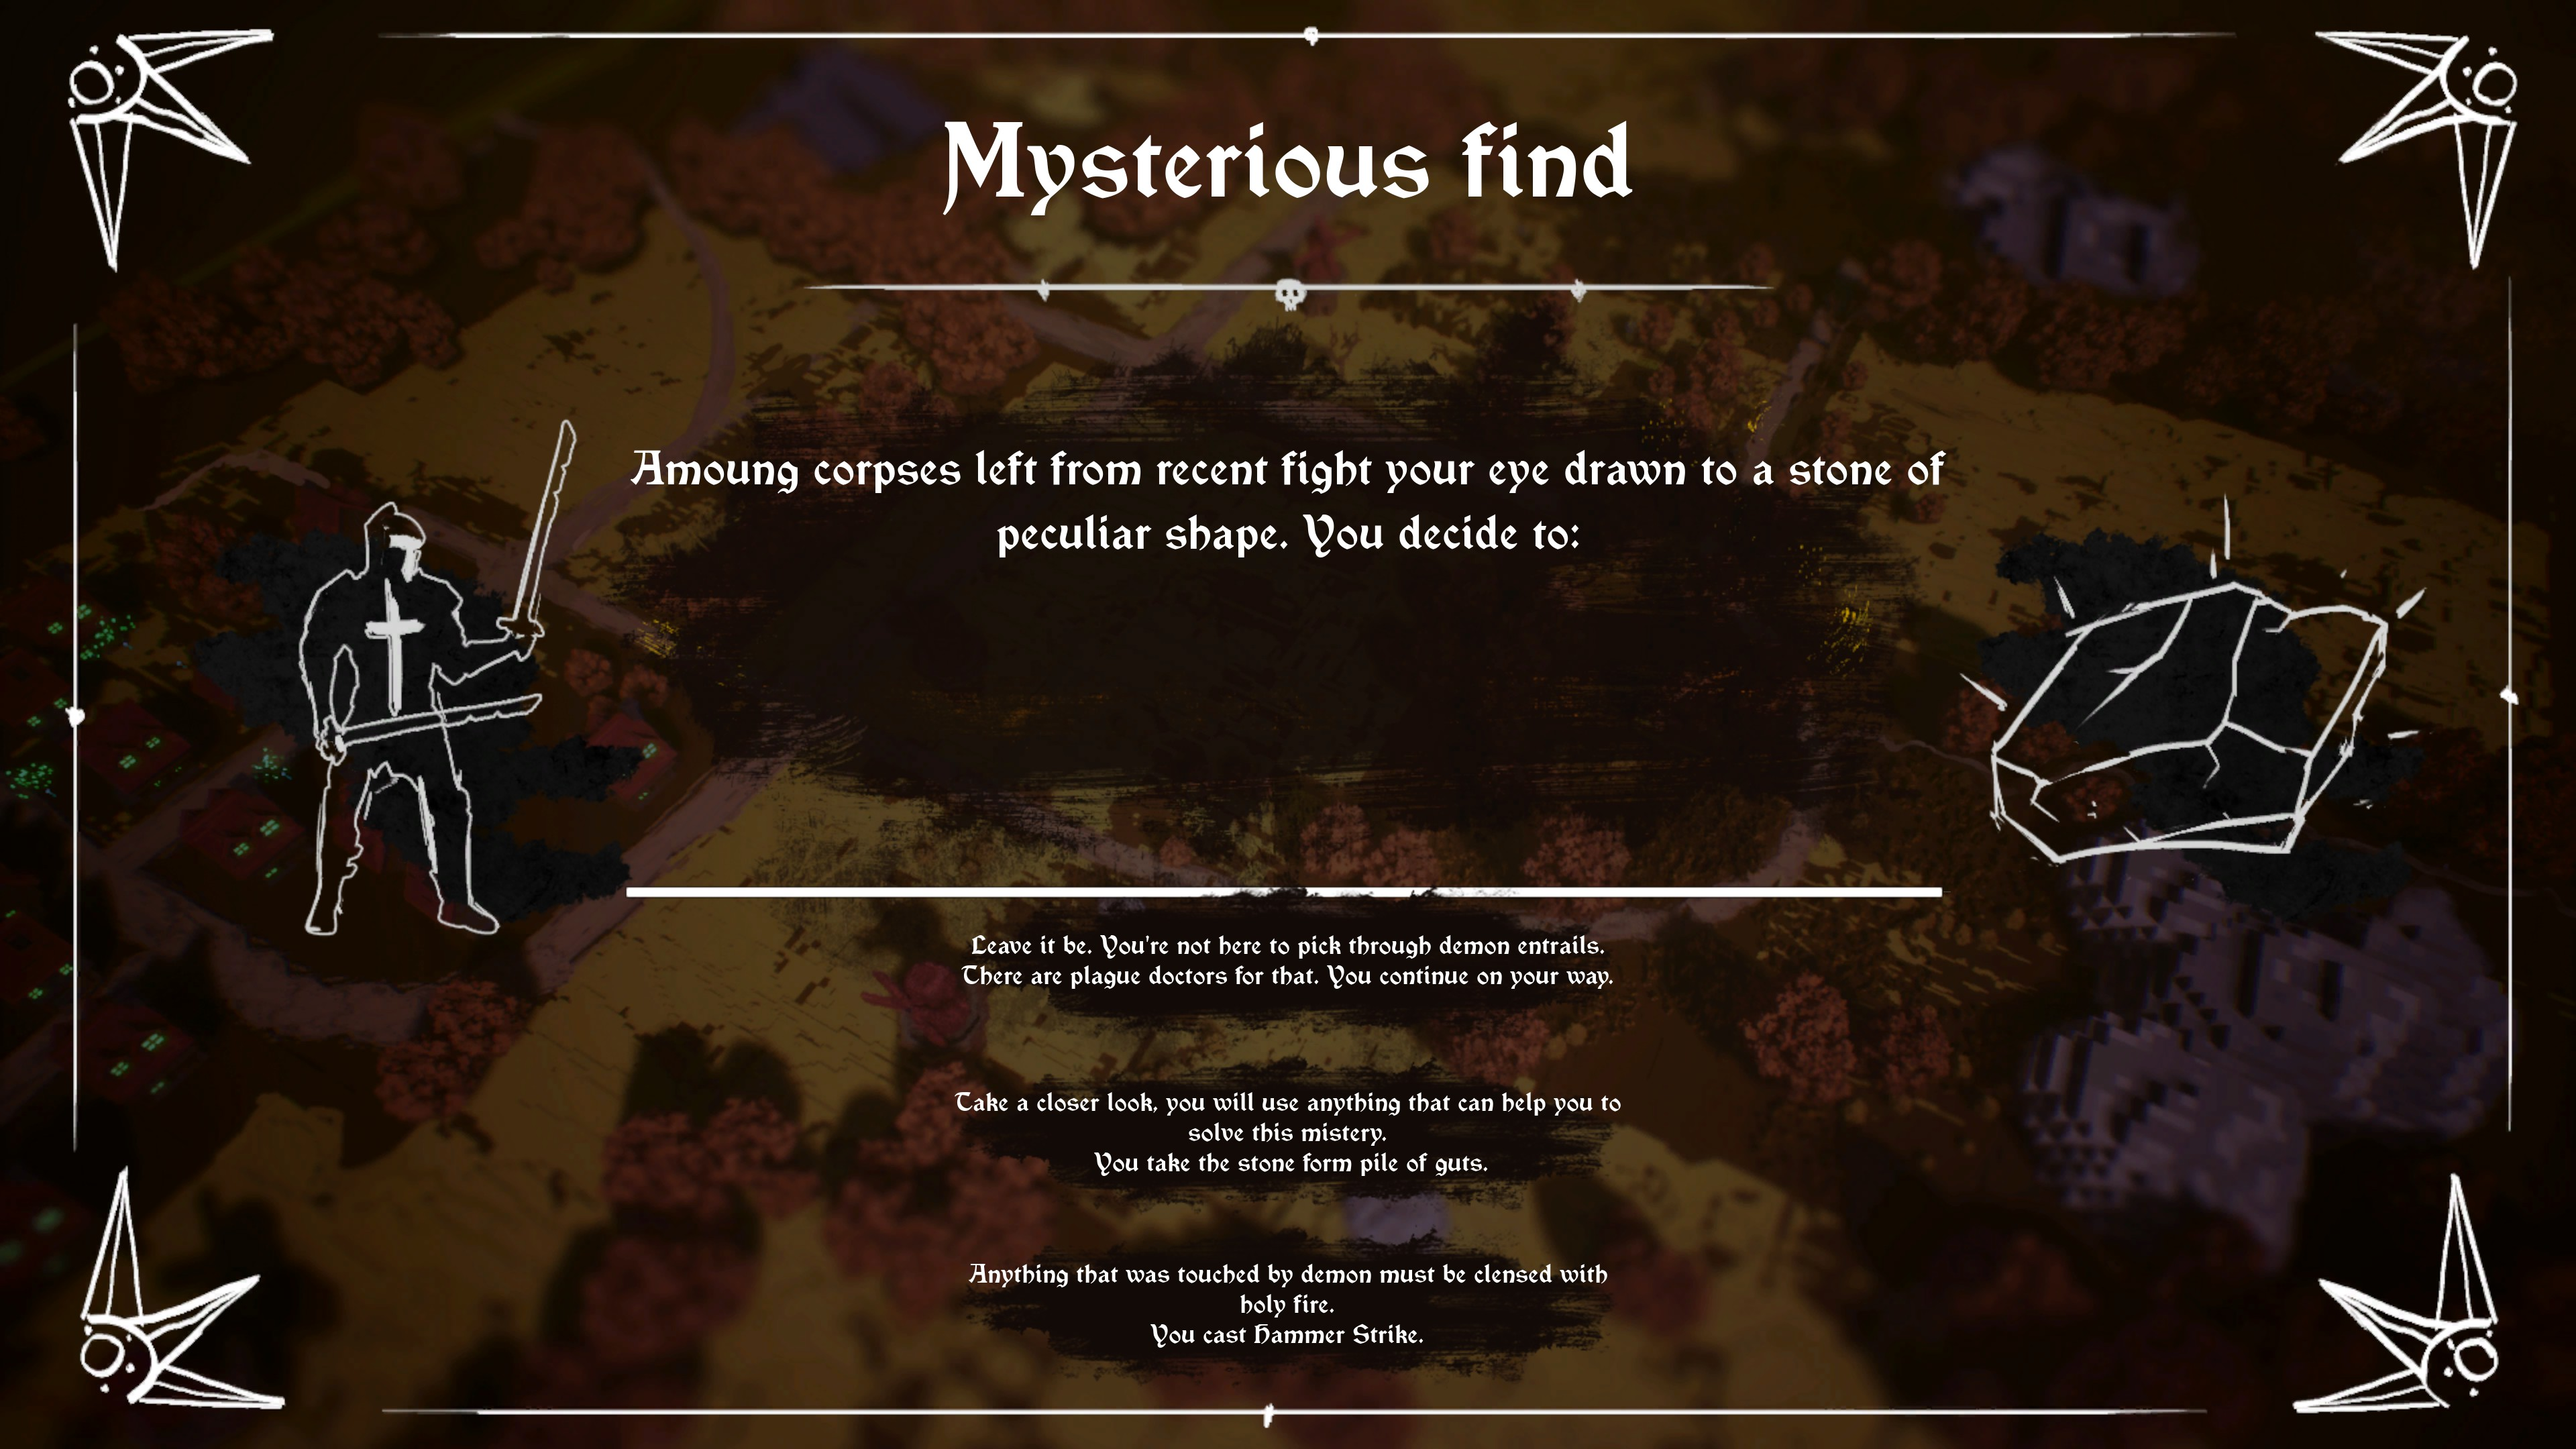 Mysterious find random encounter, among corpses left from recent fight your eye drawn to a stone of peculiar shape.